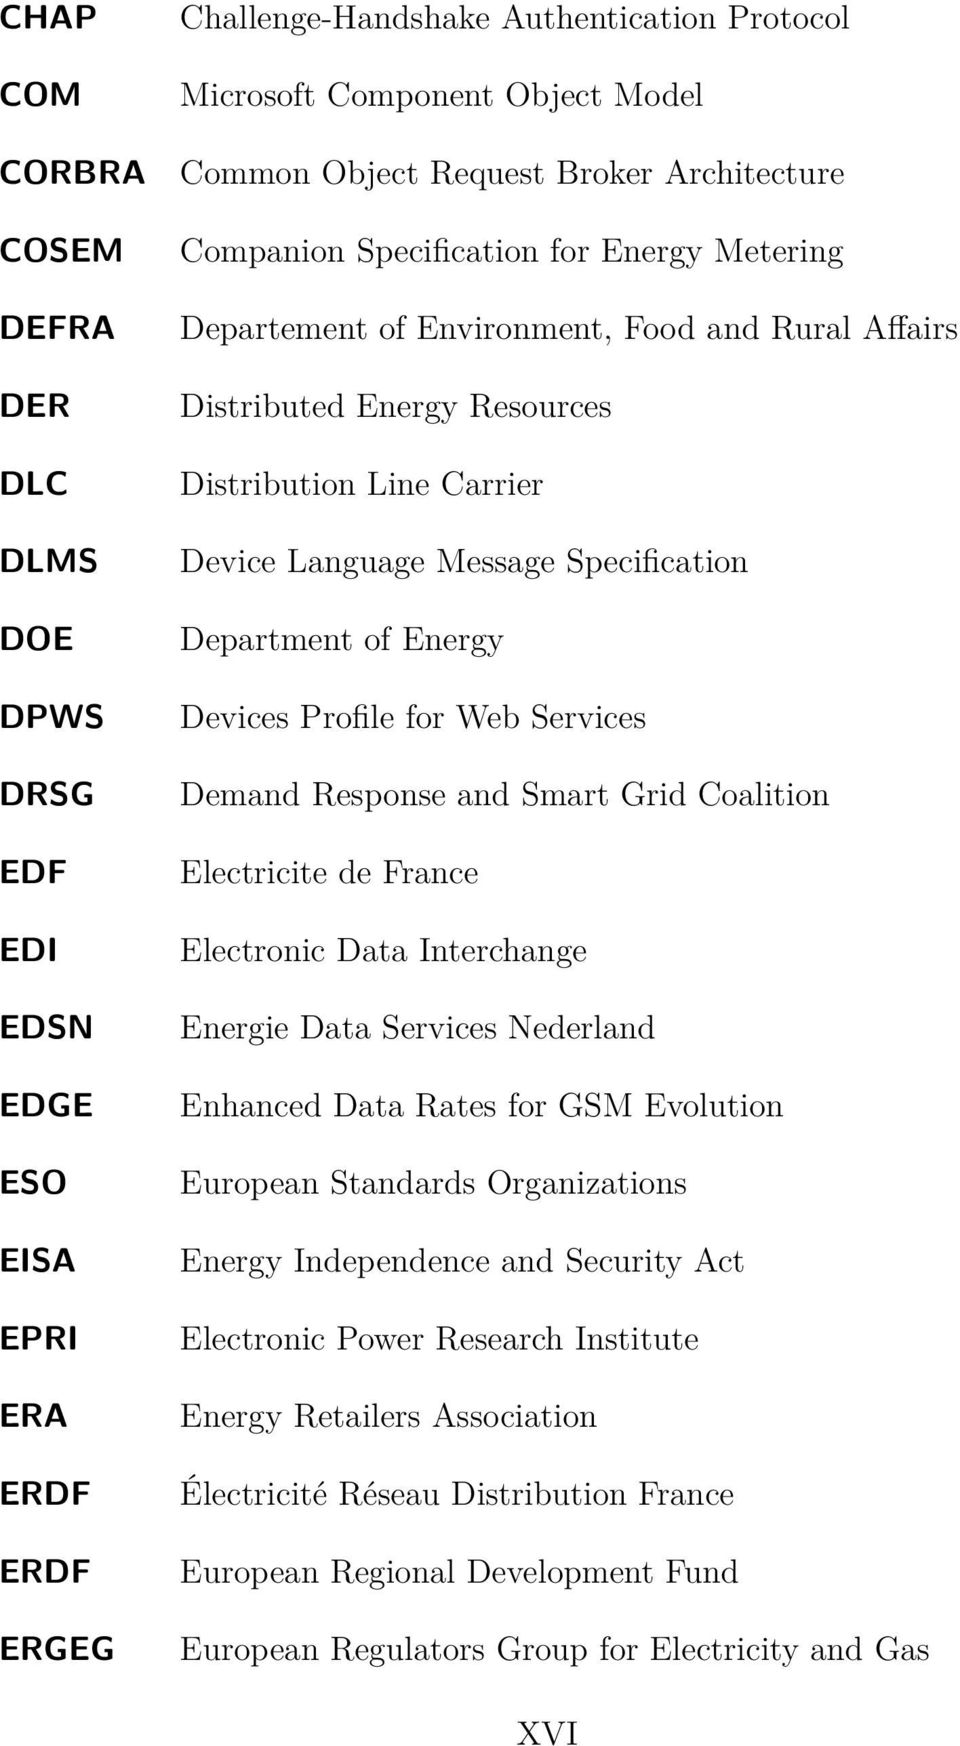 Message Specification Department of Energy Devices Profile for Web Services Demand Response and Smart Grid Coalition Electricite de France Electronic Data Interchange Energie Data Services Nederland